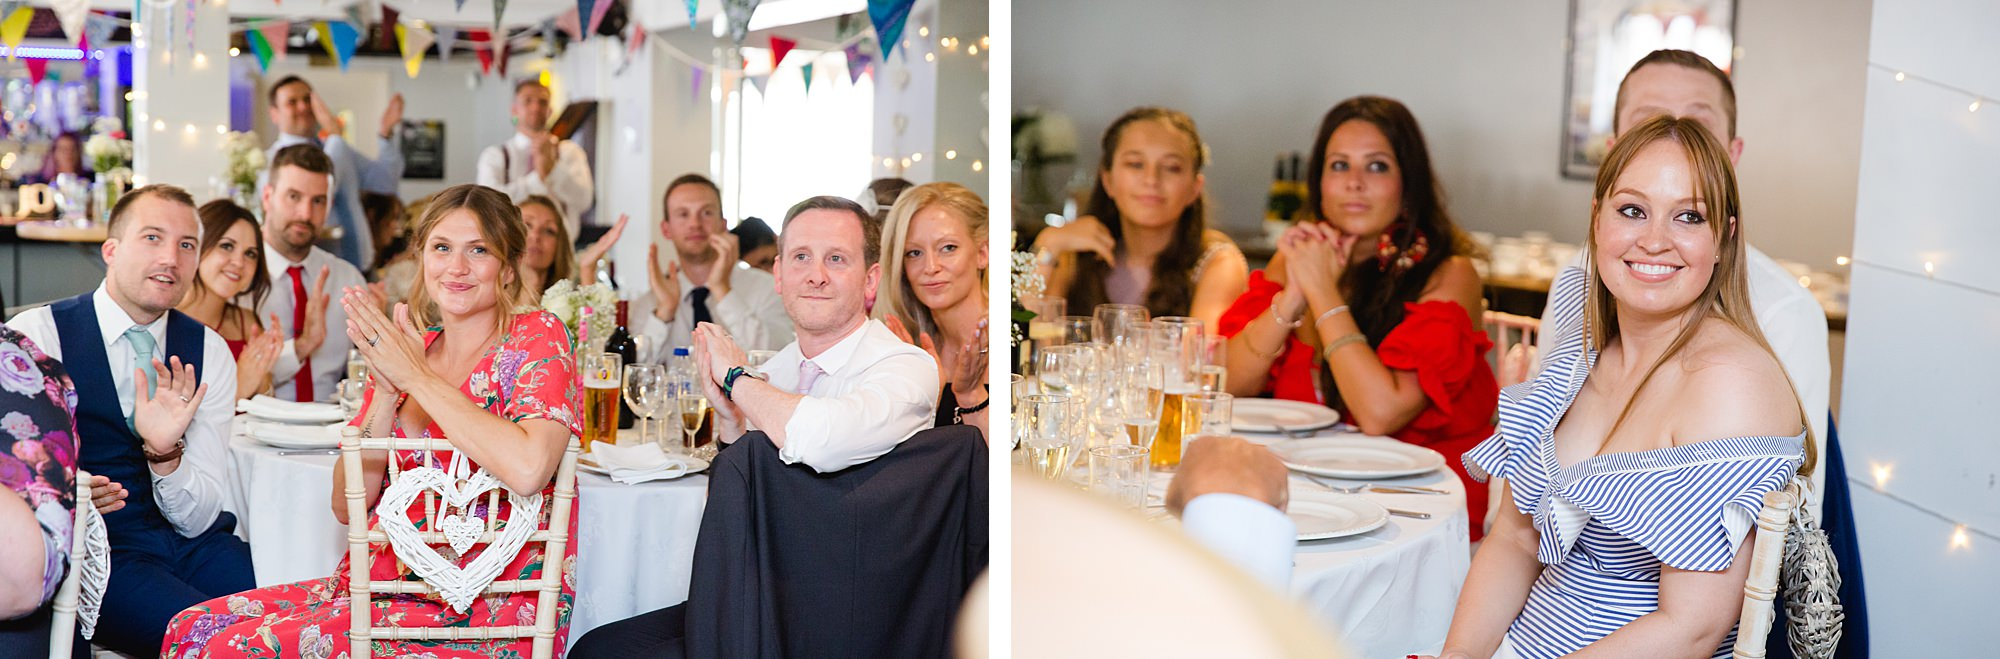 Writtle university college wedding guests enjoying speeches